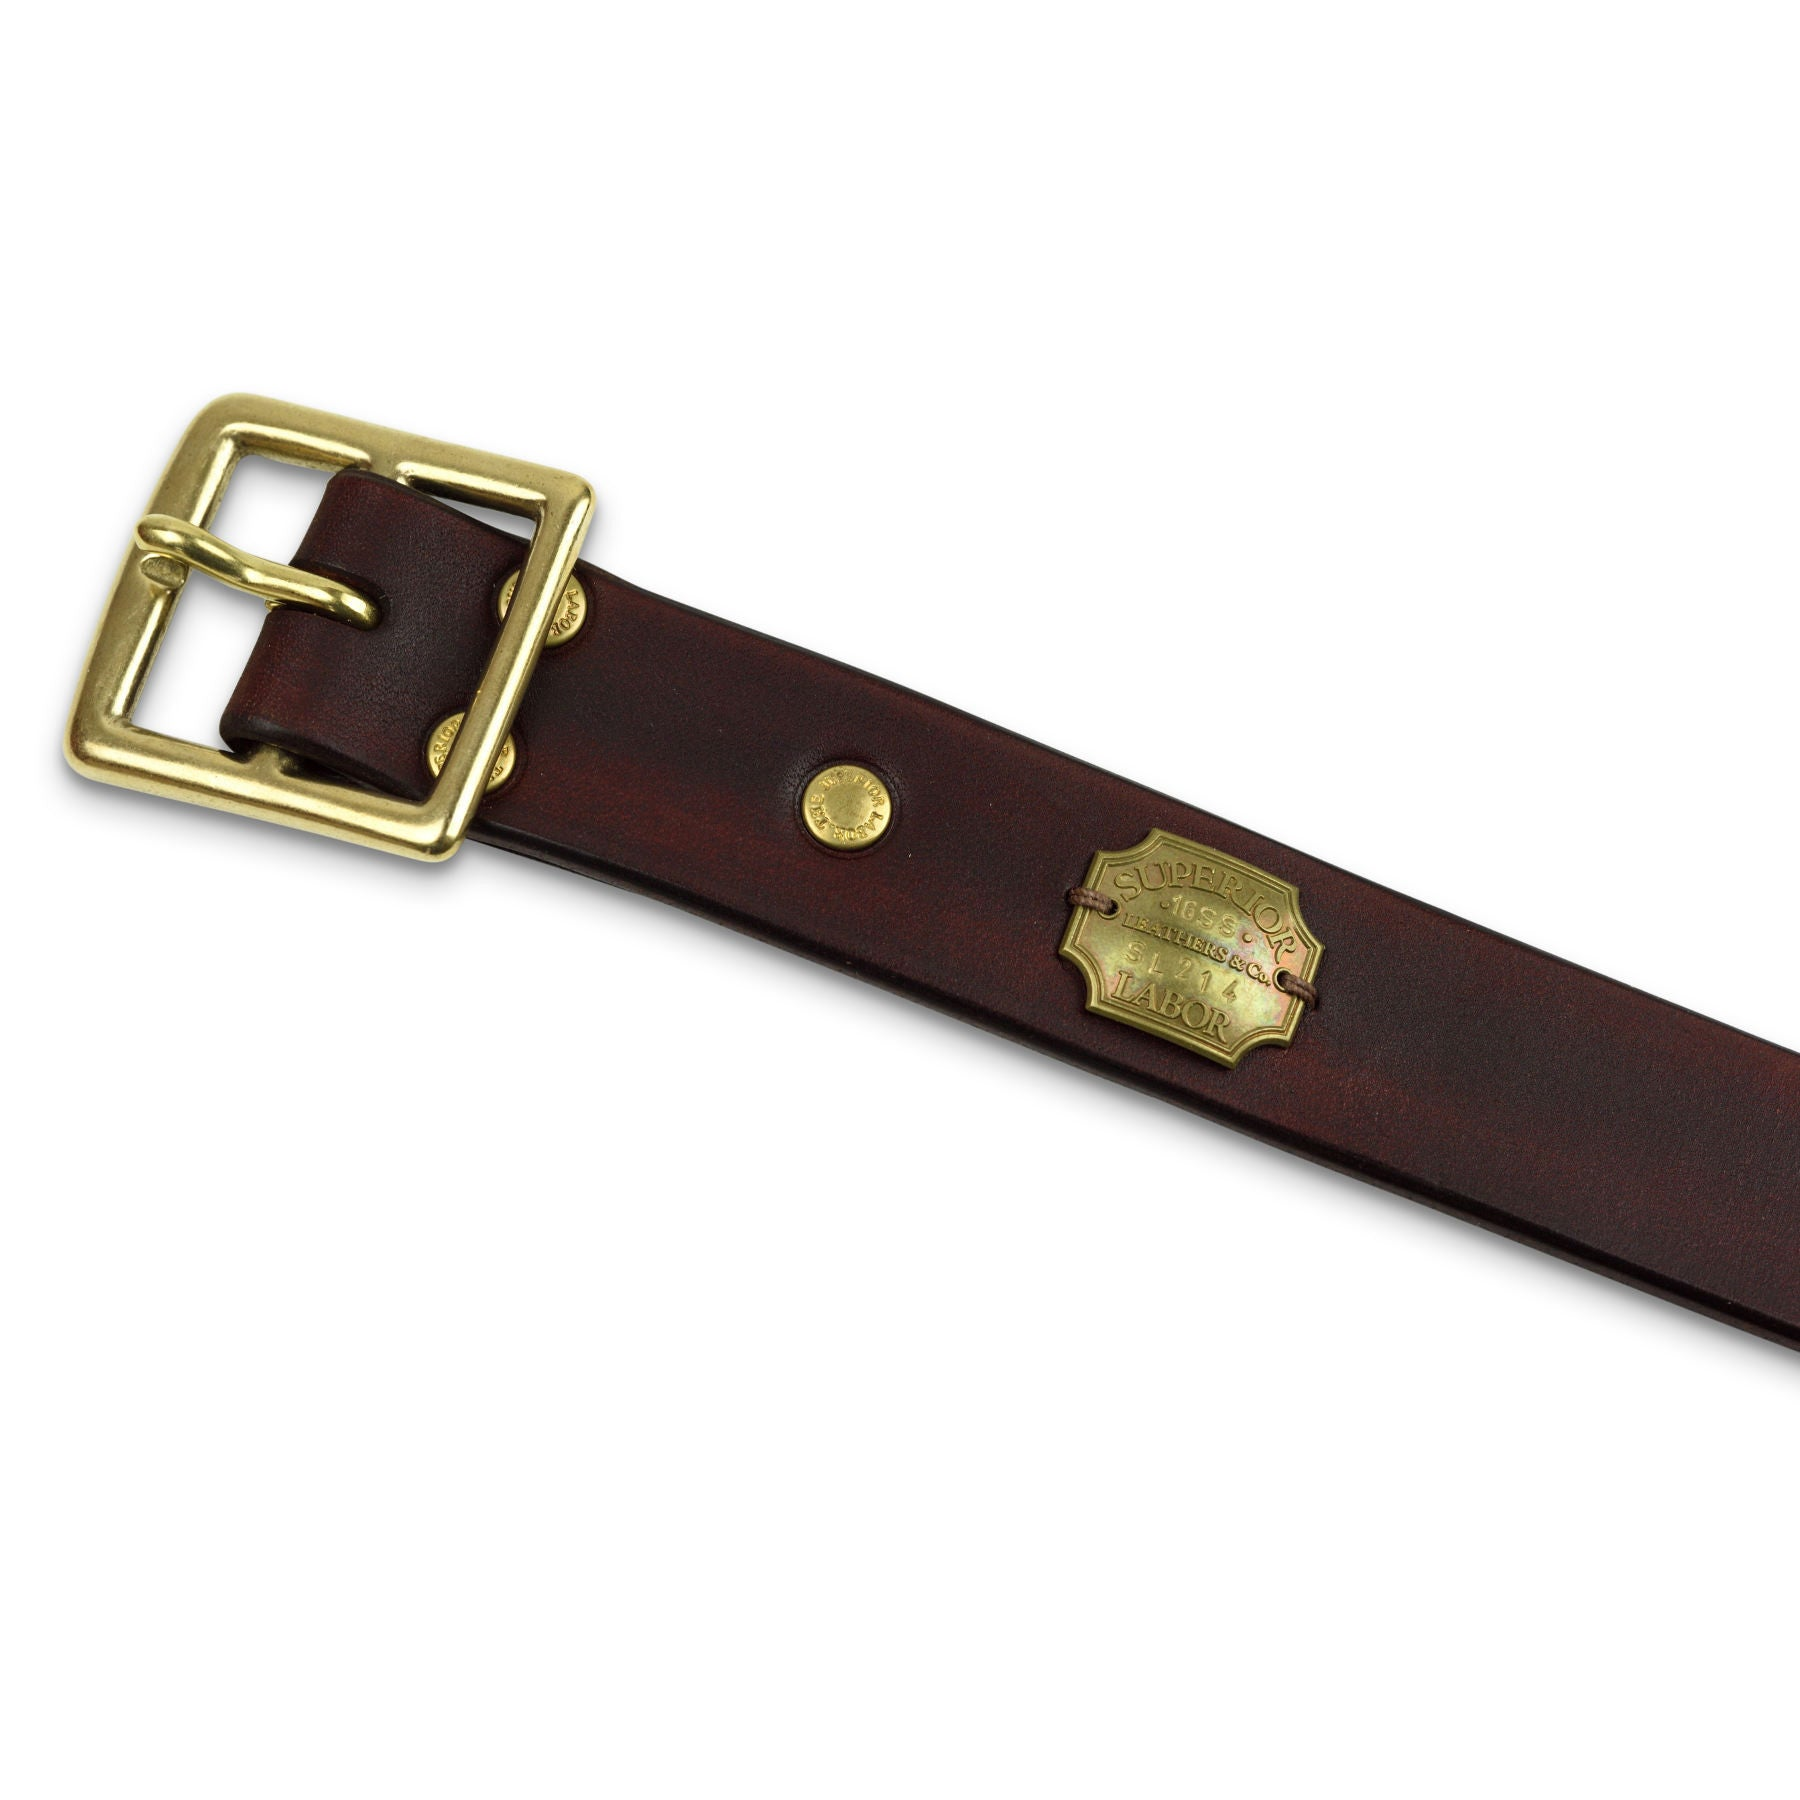 Superior Labor hand dye standard leather belt brown - NOMADO Store